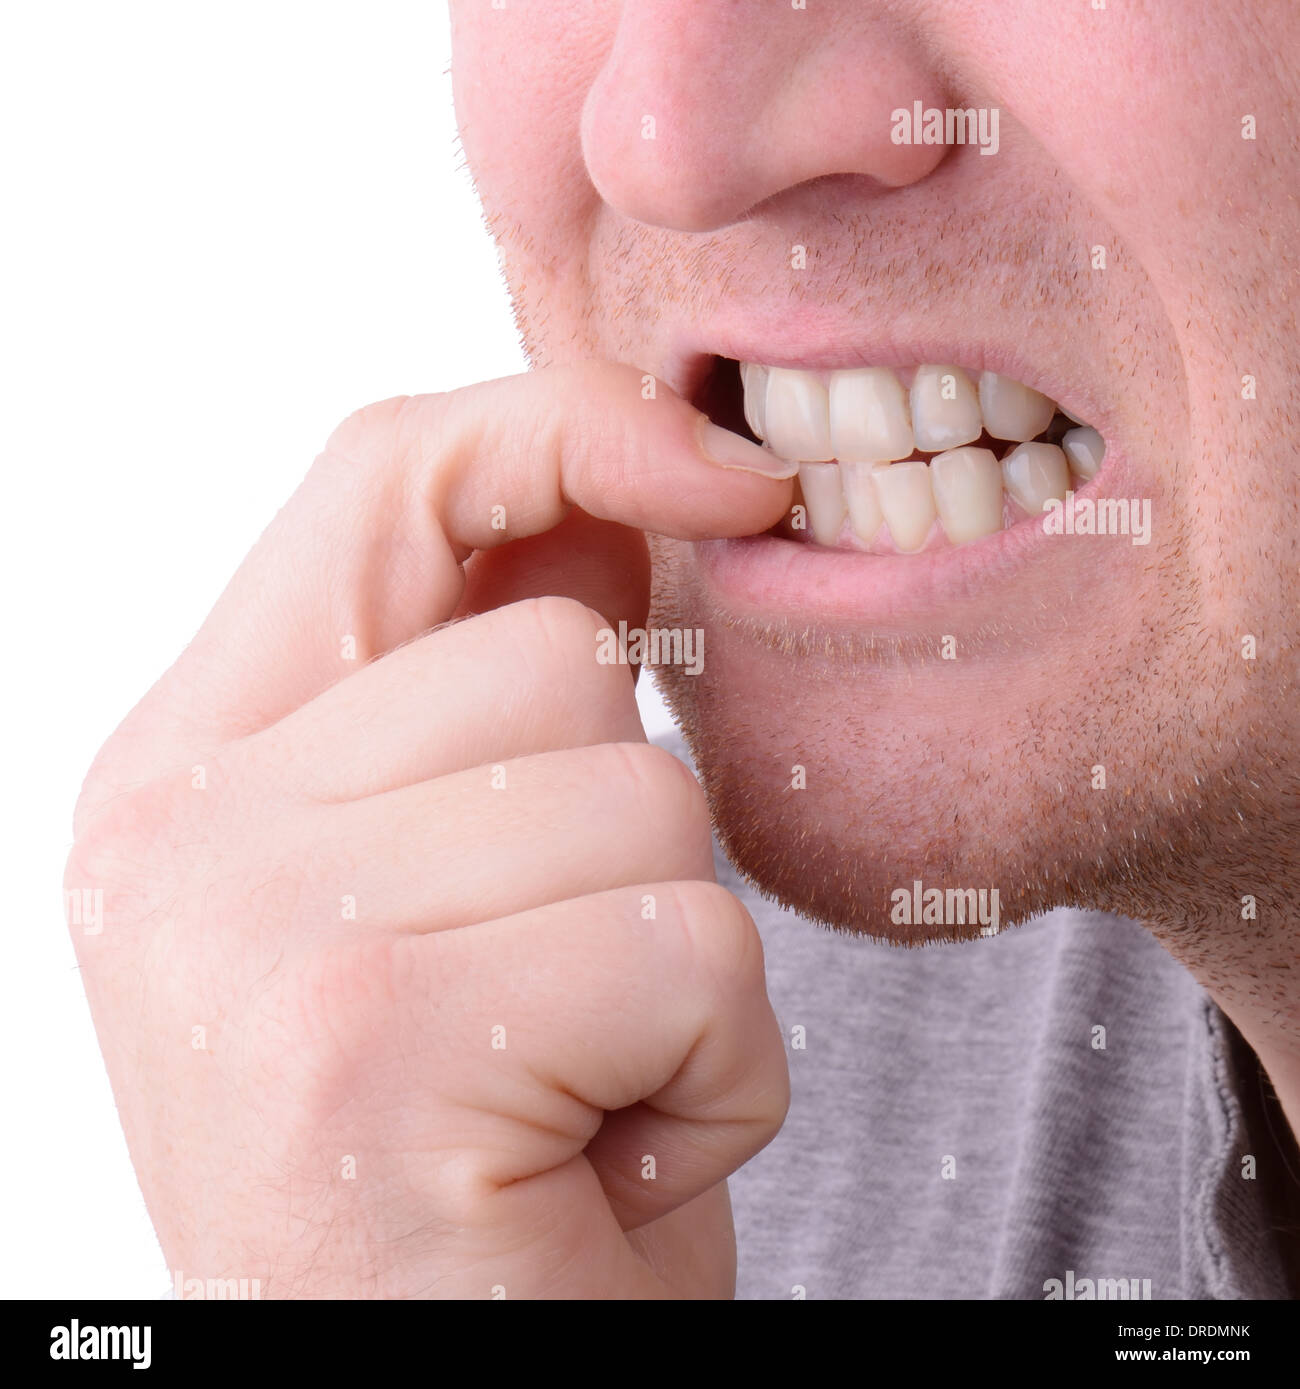 a macro view of biting nails - Stock Image